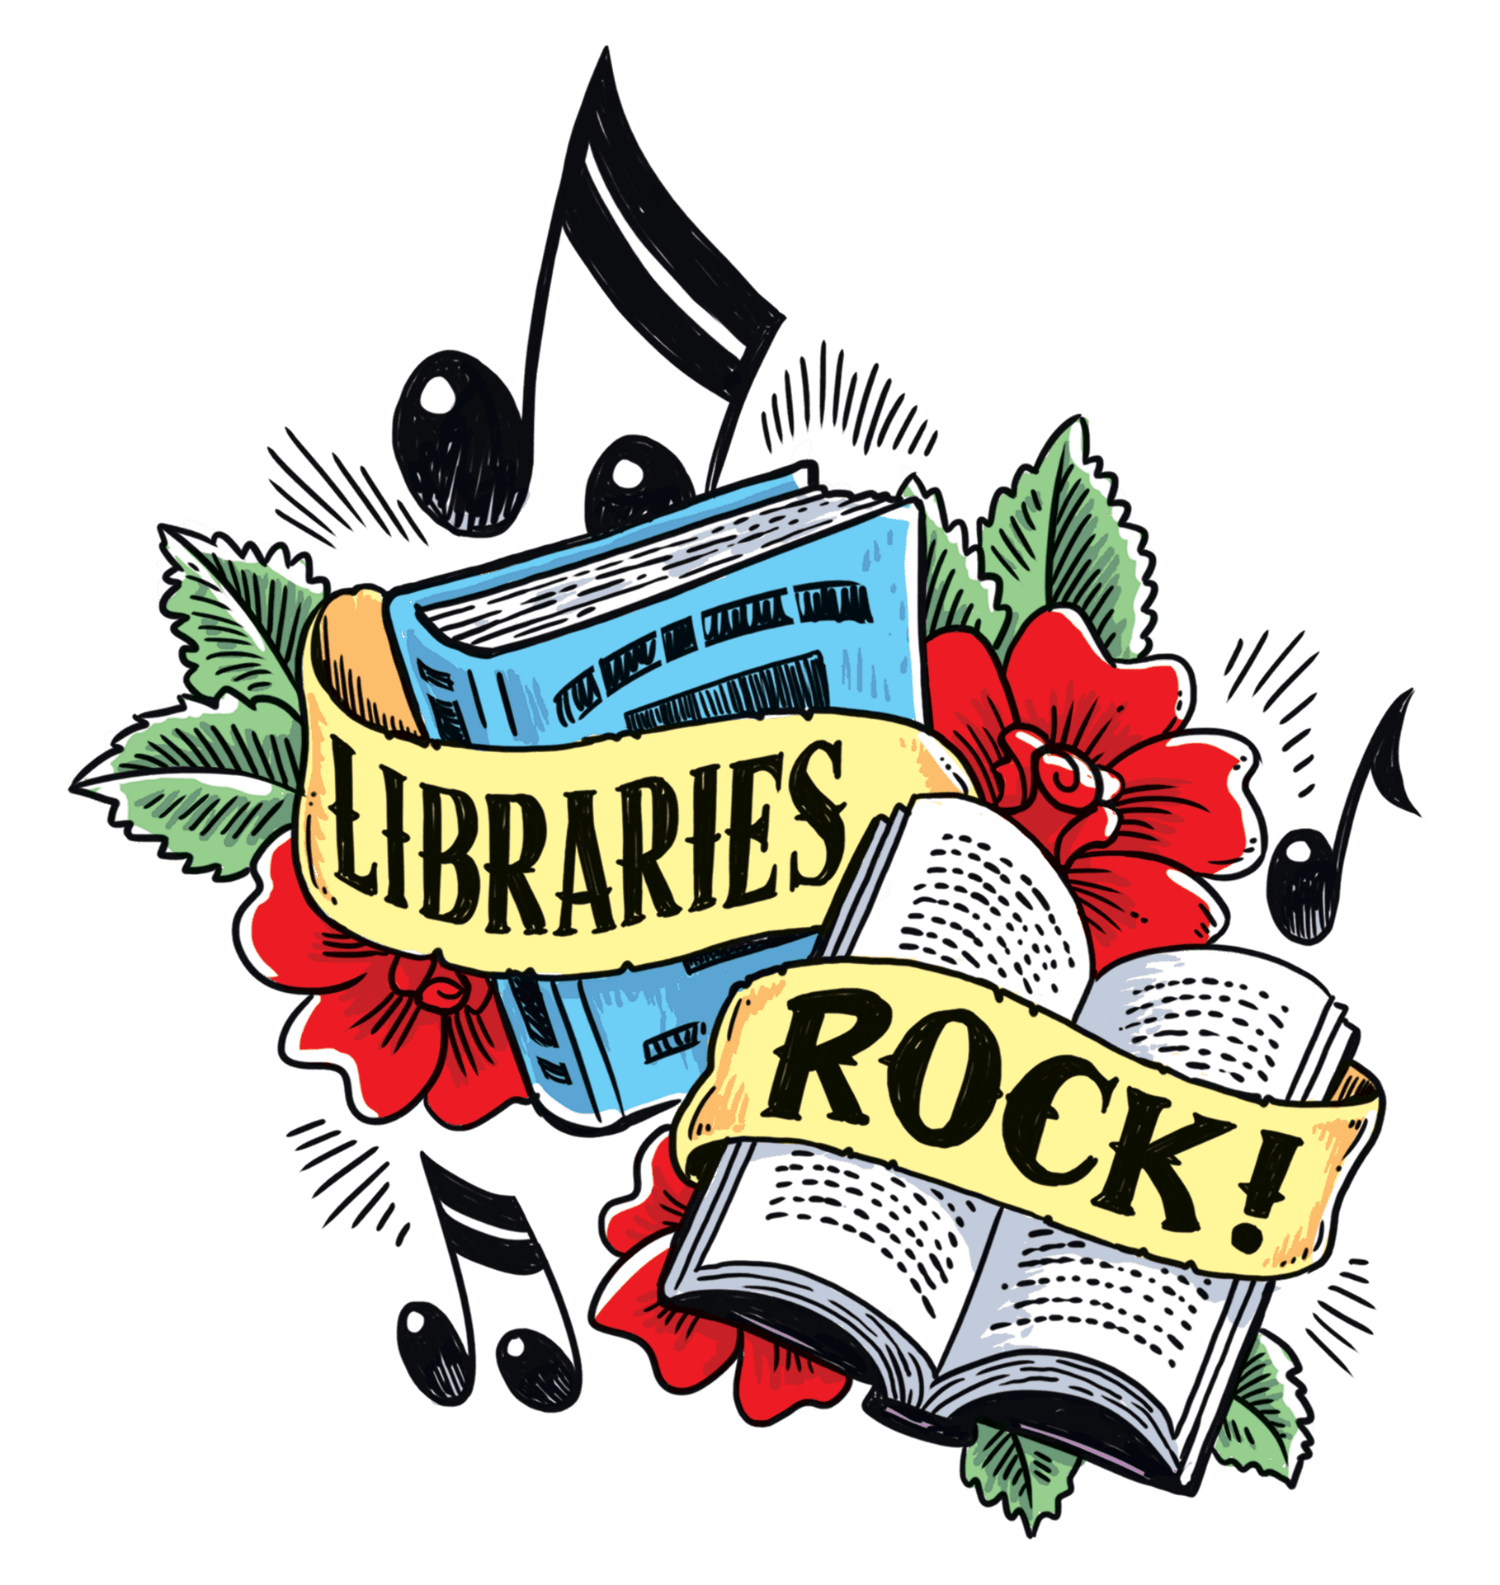 LIBRARIES ROCK! Adult Summer Reading Program